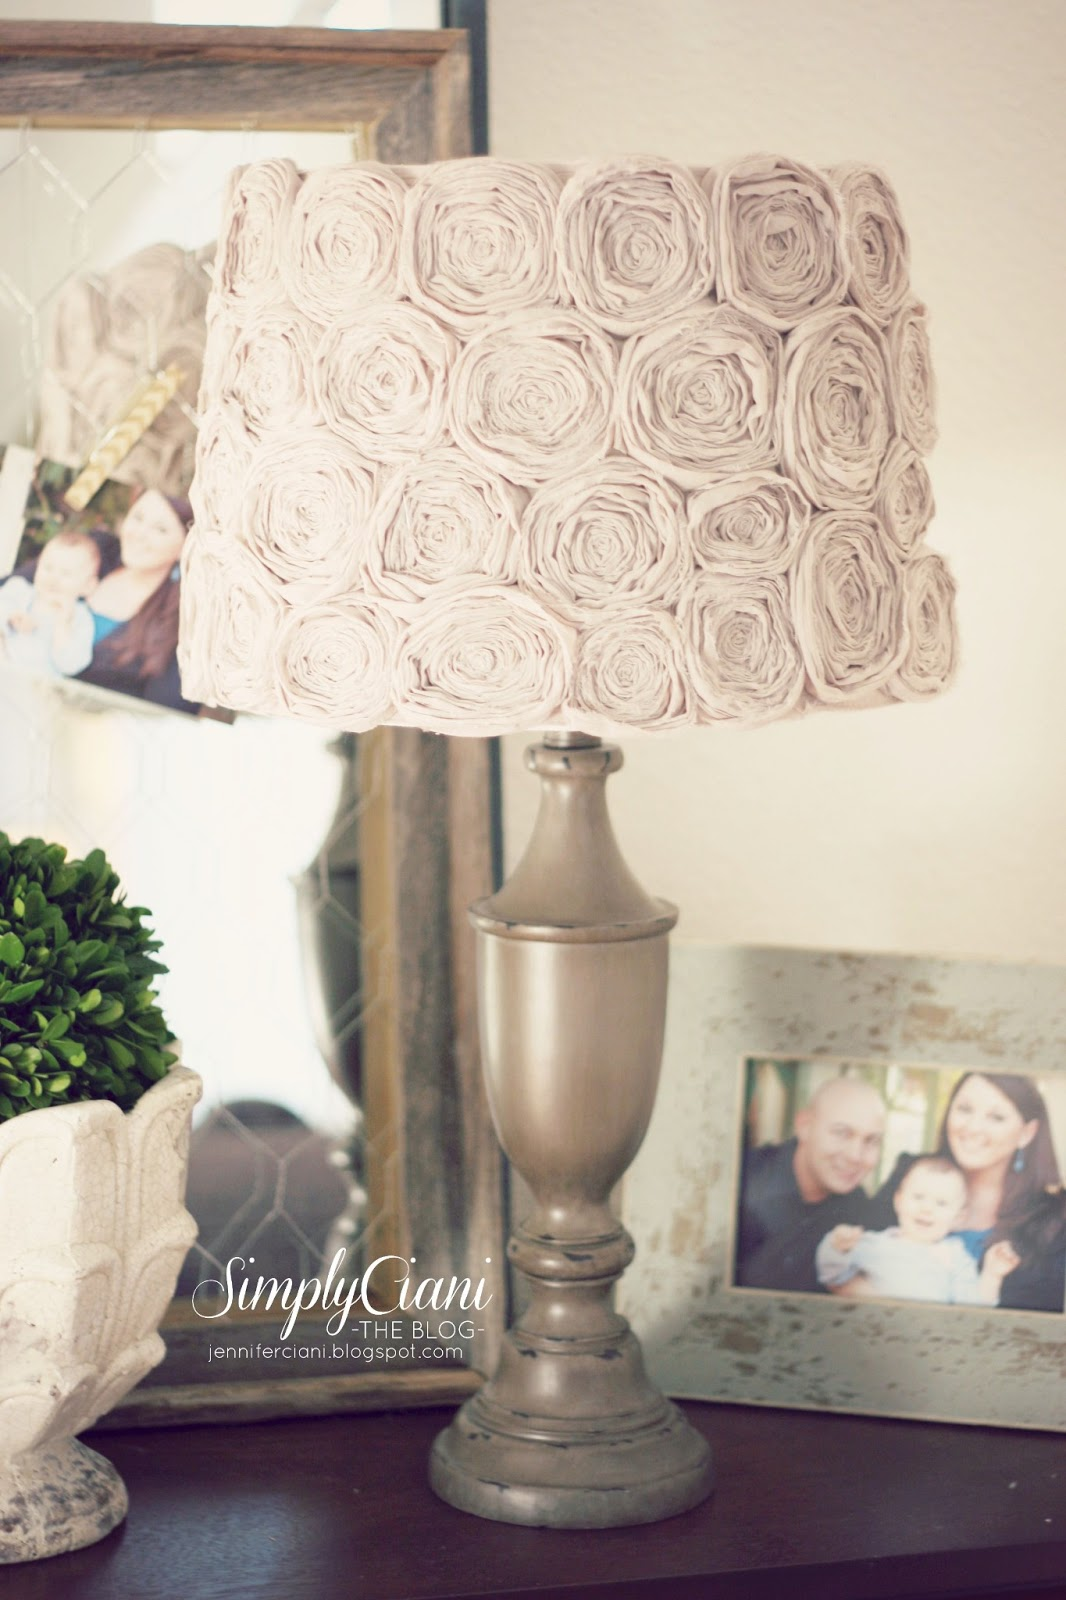 Diy Shabby Chic Rosette Lamp Shade | Simply Ciani